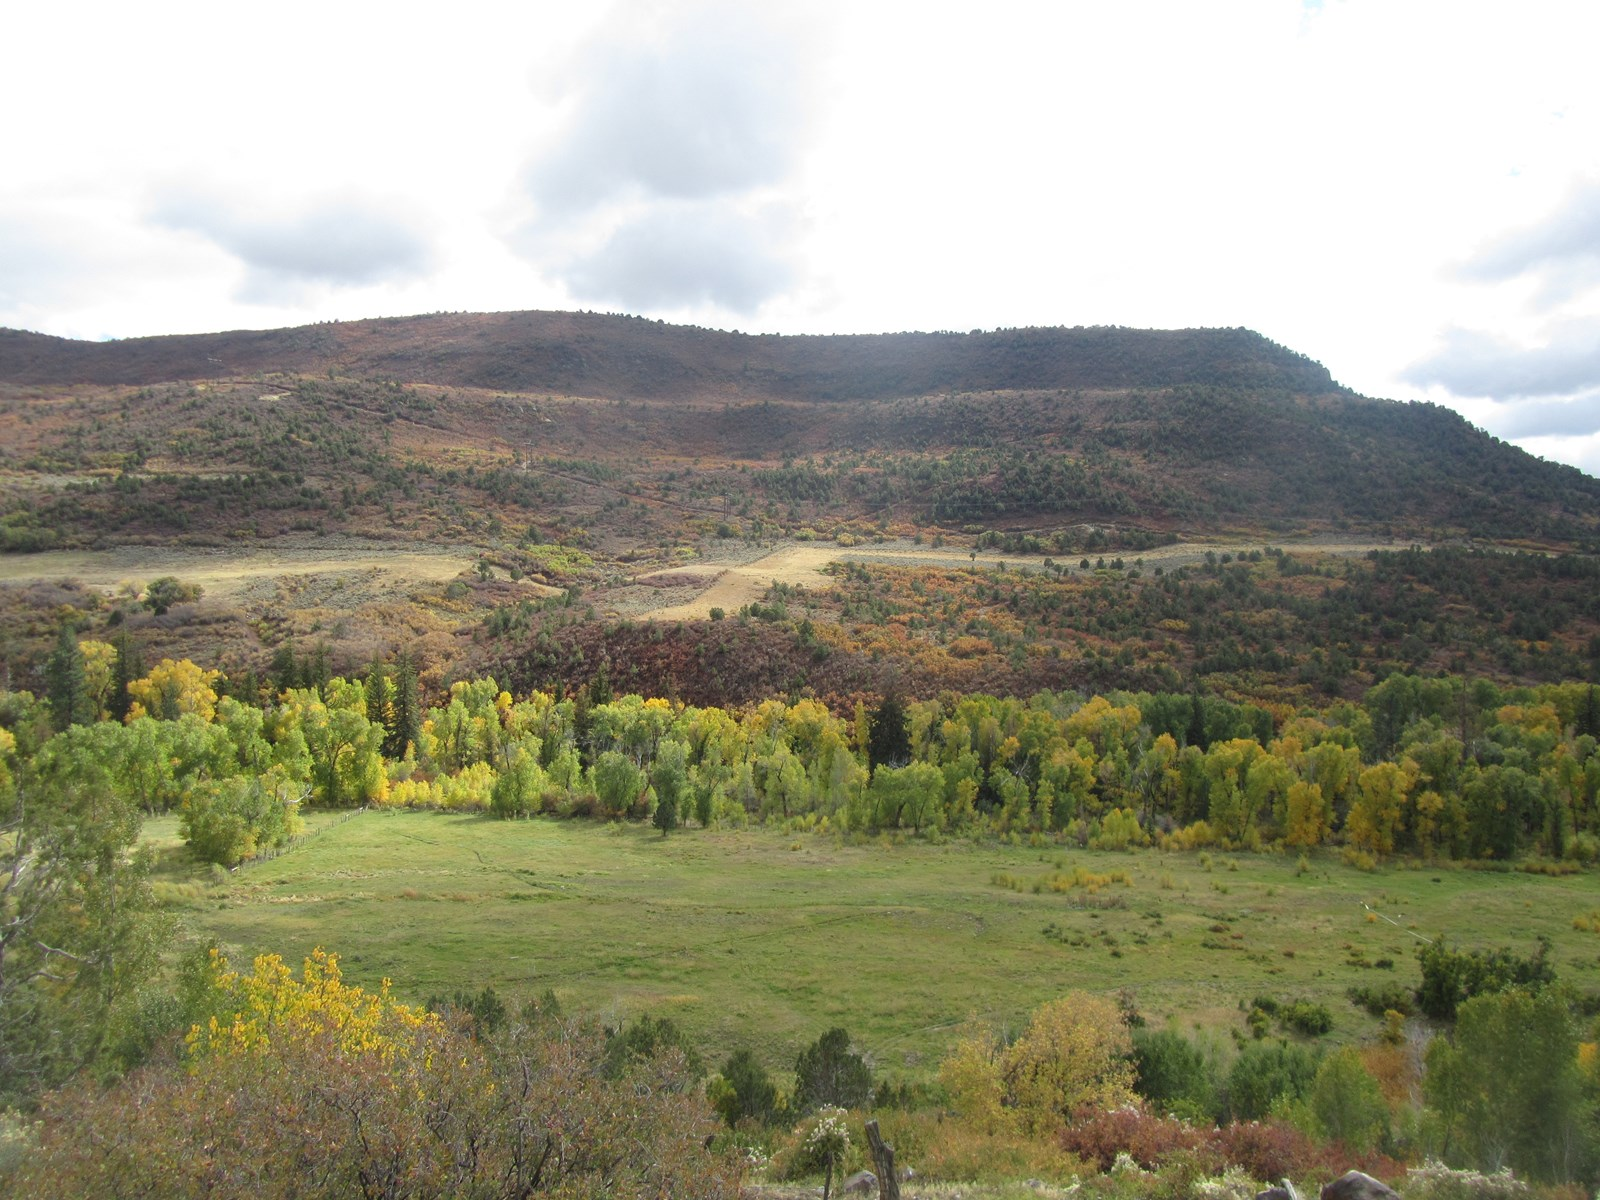 Vacant Land for Sale in Western Colorado with Irrigation